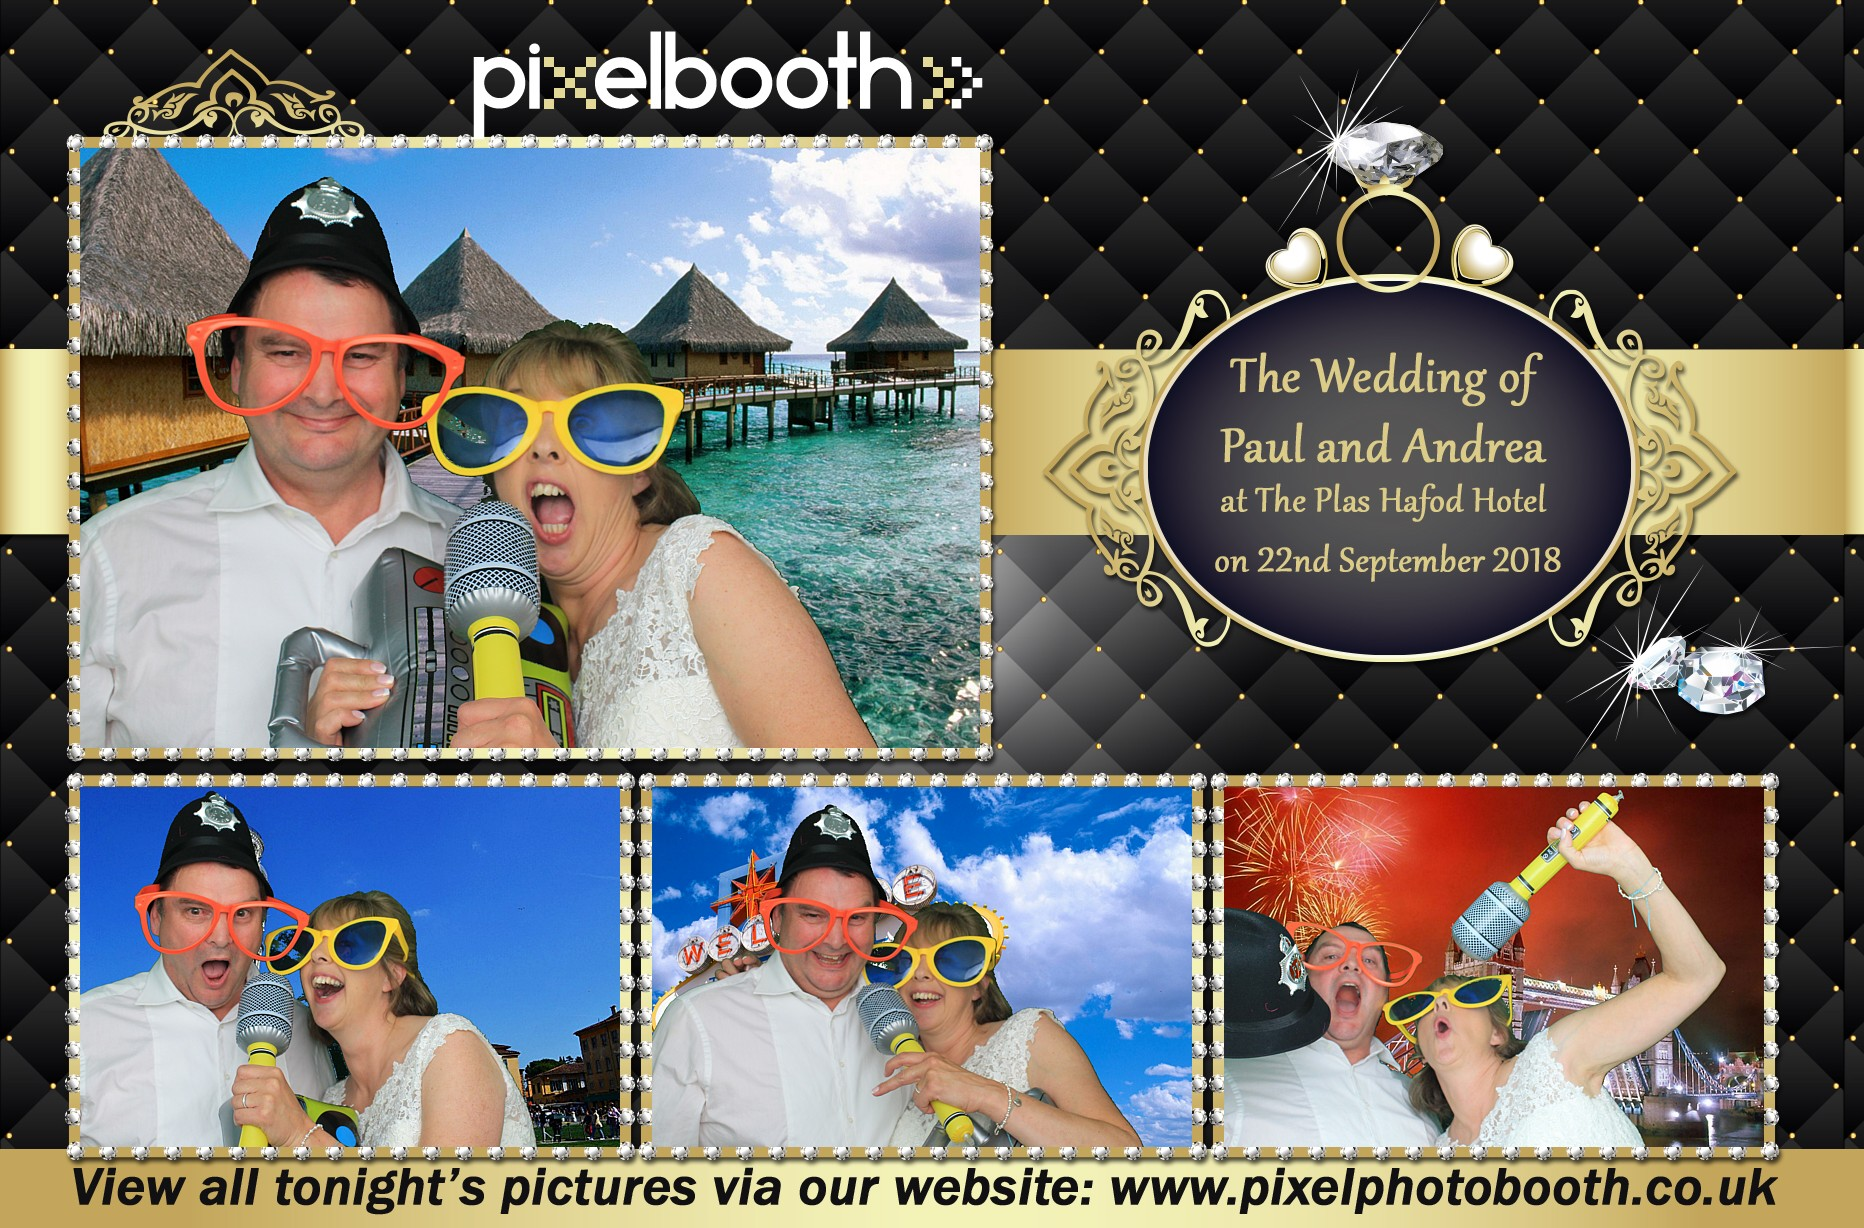 22nd Sept 2018: Paul and Andrea's Wedding at The Plas Hafod Hotel